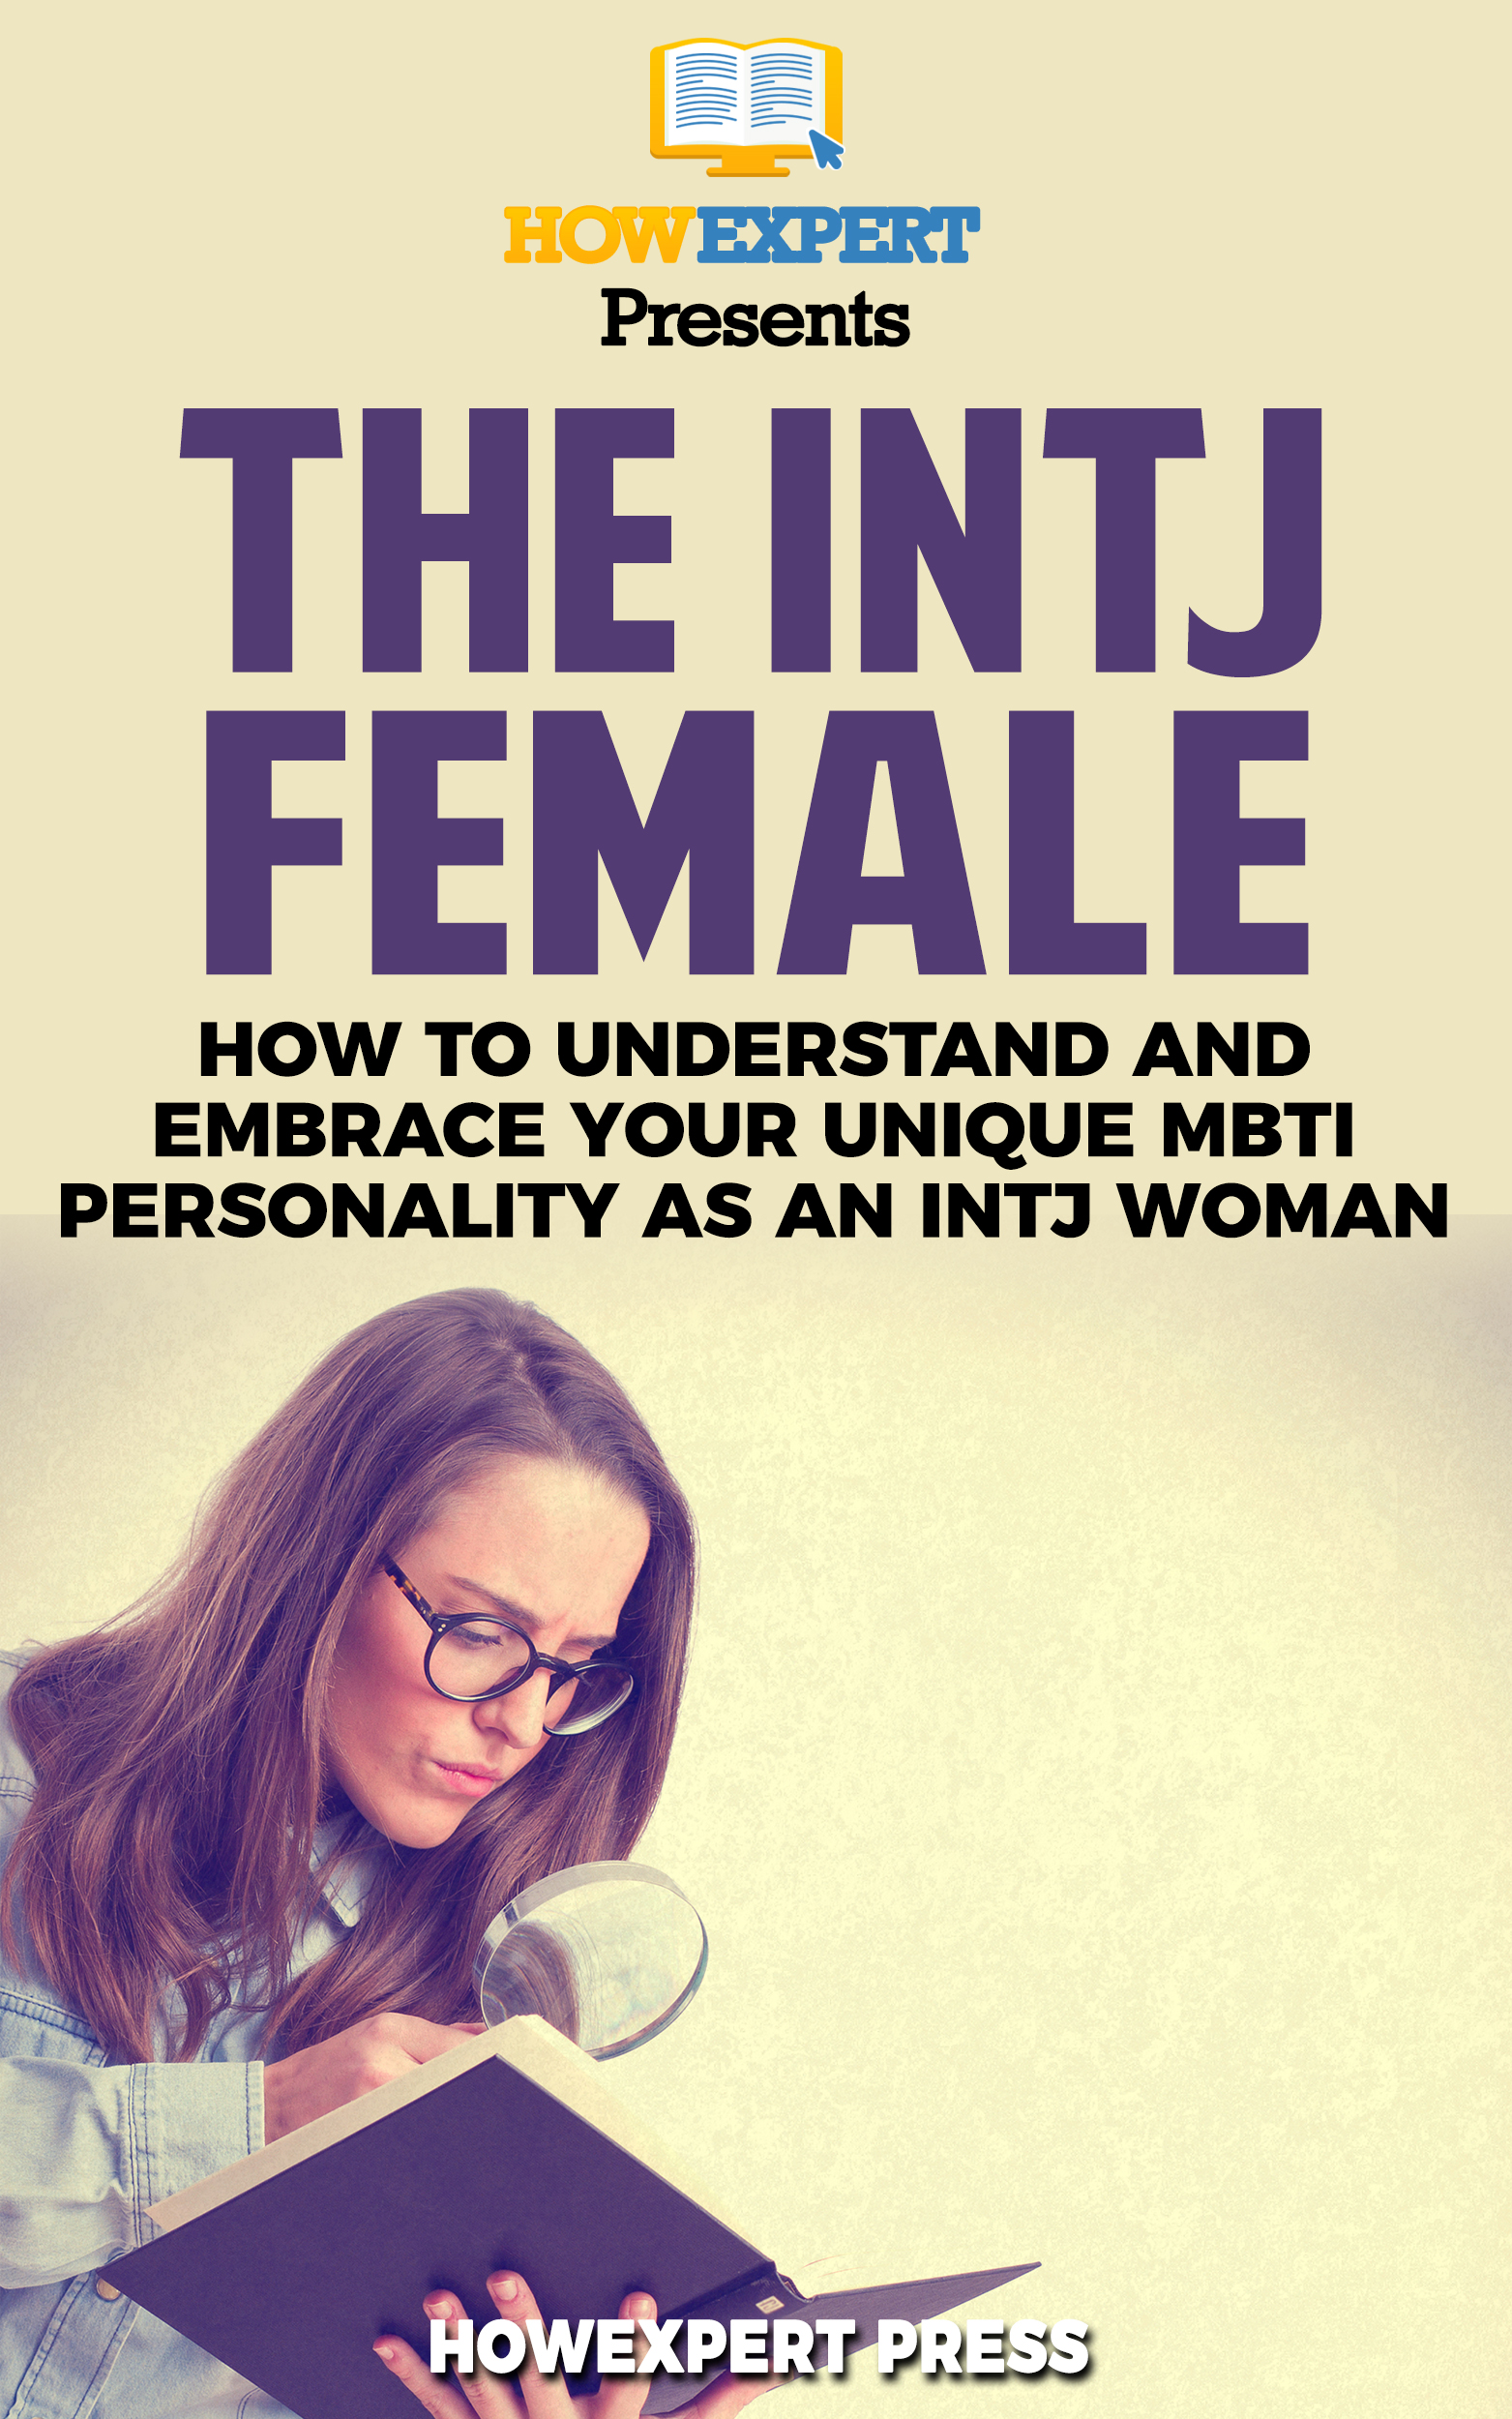 The INTJ Female: How to Understand and Embrace Your Unique MBTI Personality  as an INTJ Woman, an Ebook by HowExpert